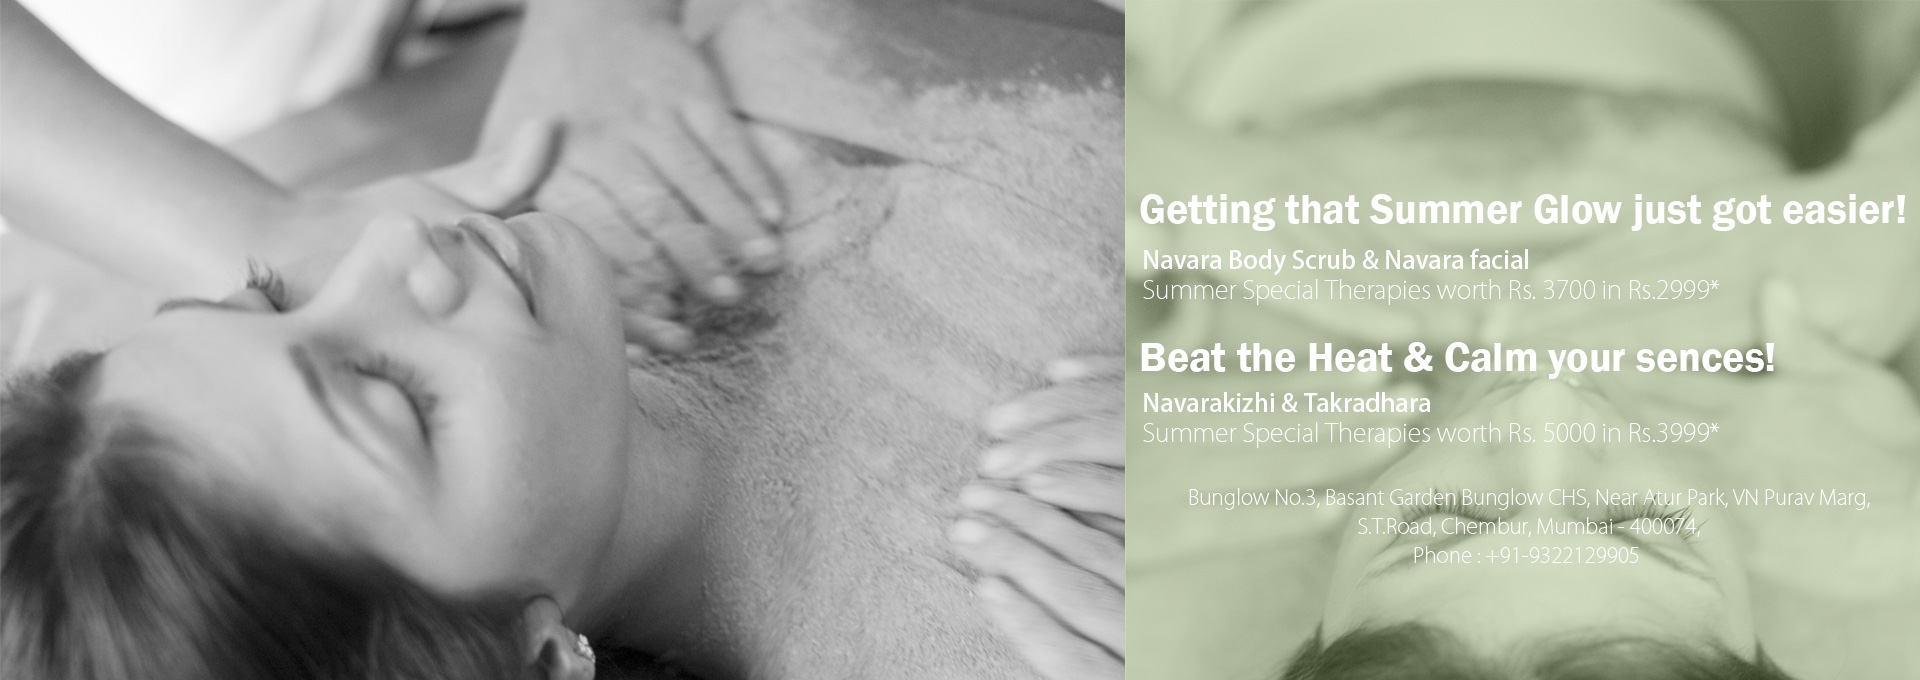 Amazing ways to cool off with Kairali's Summer Special Therapies